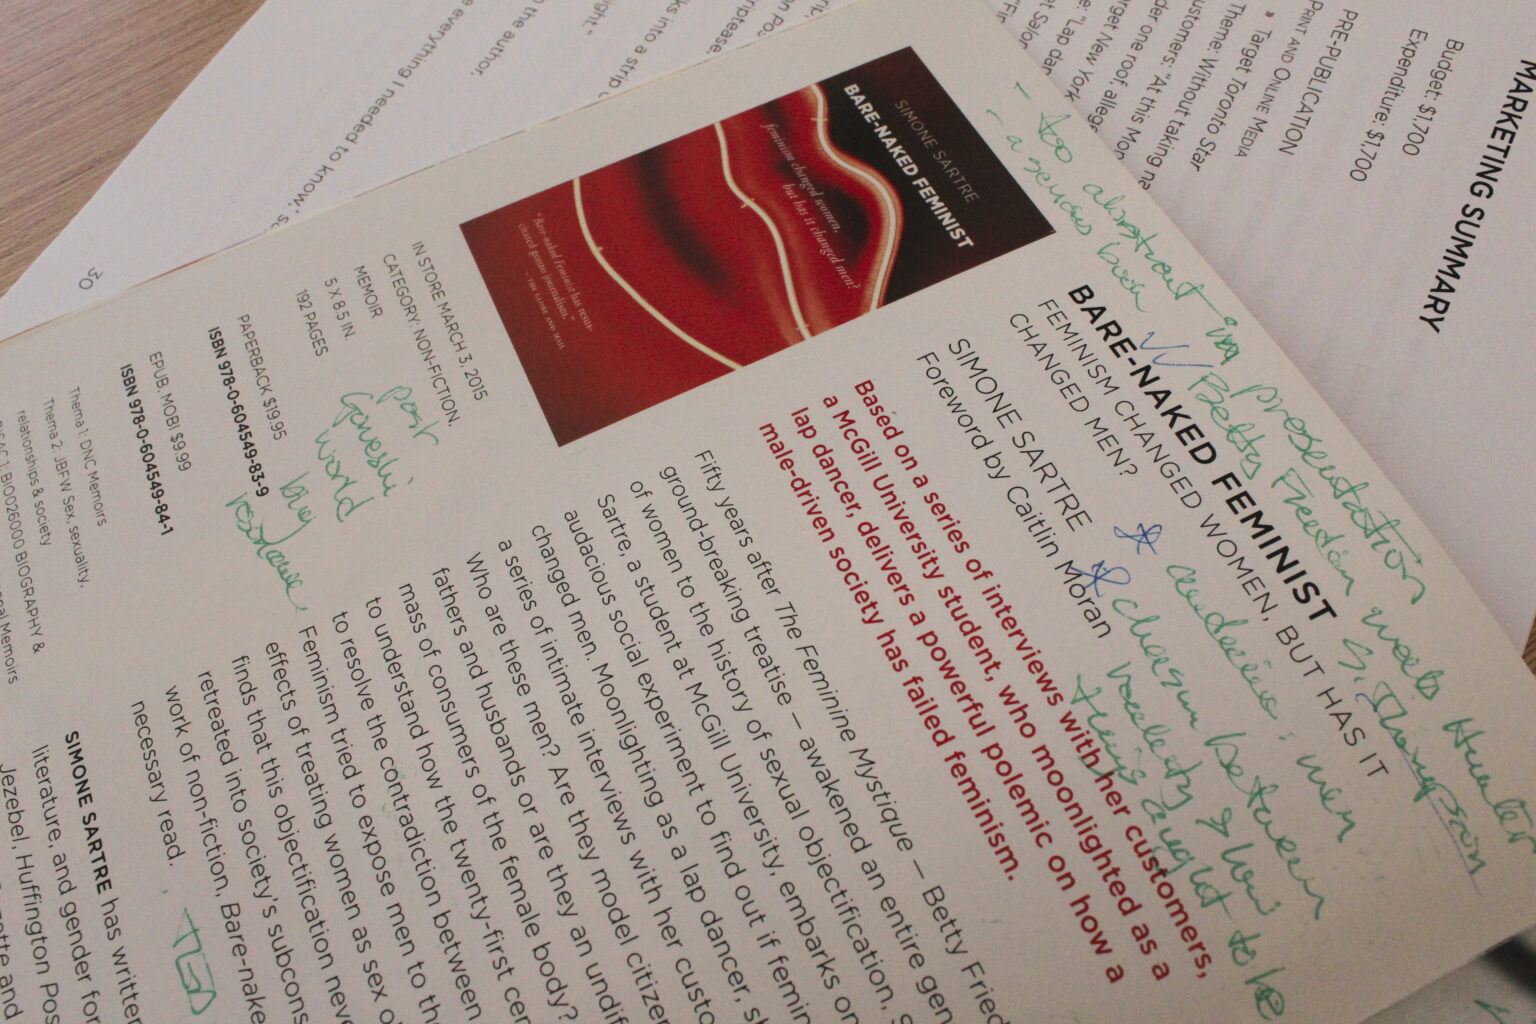 Vortext Press project materials – annotated catalogue pages